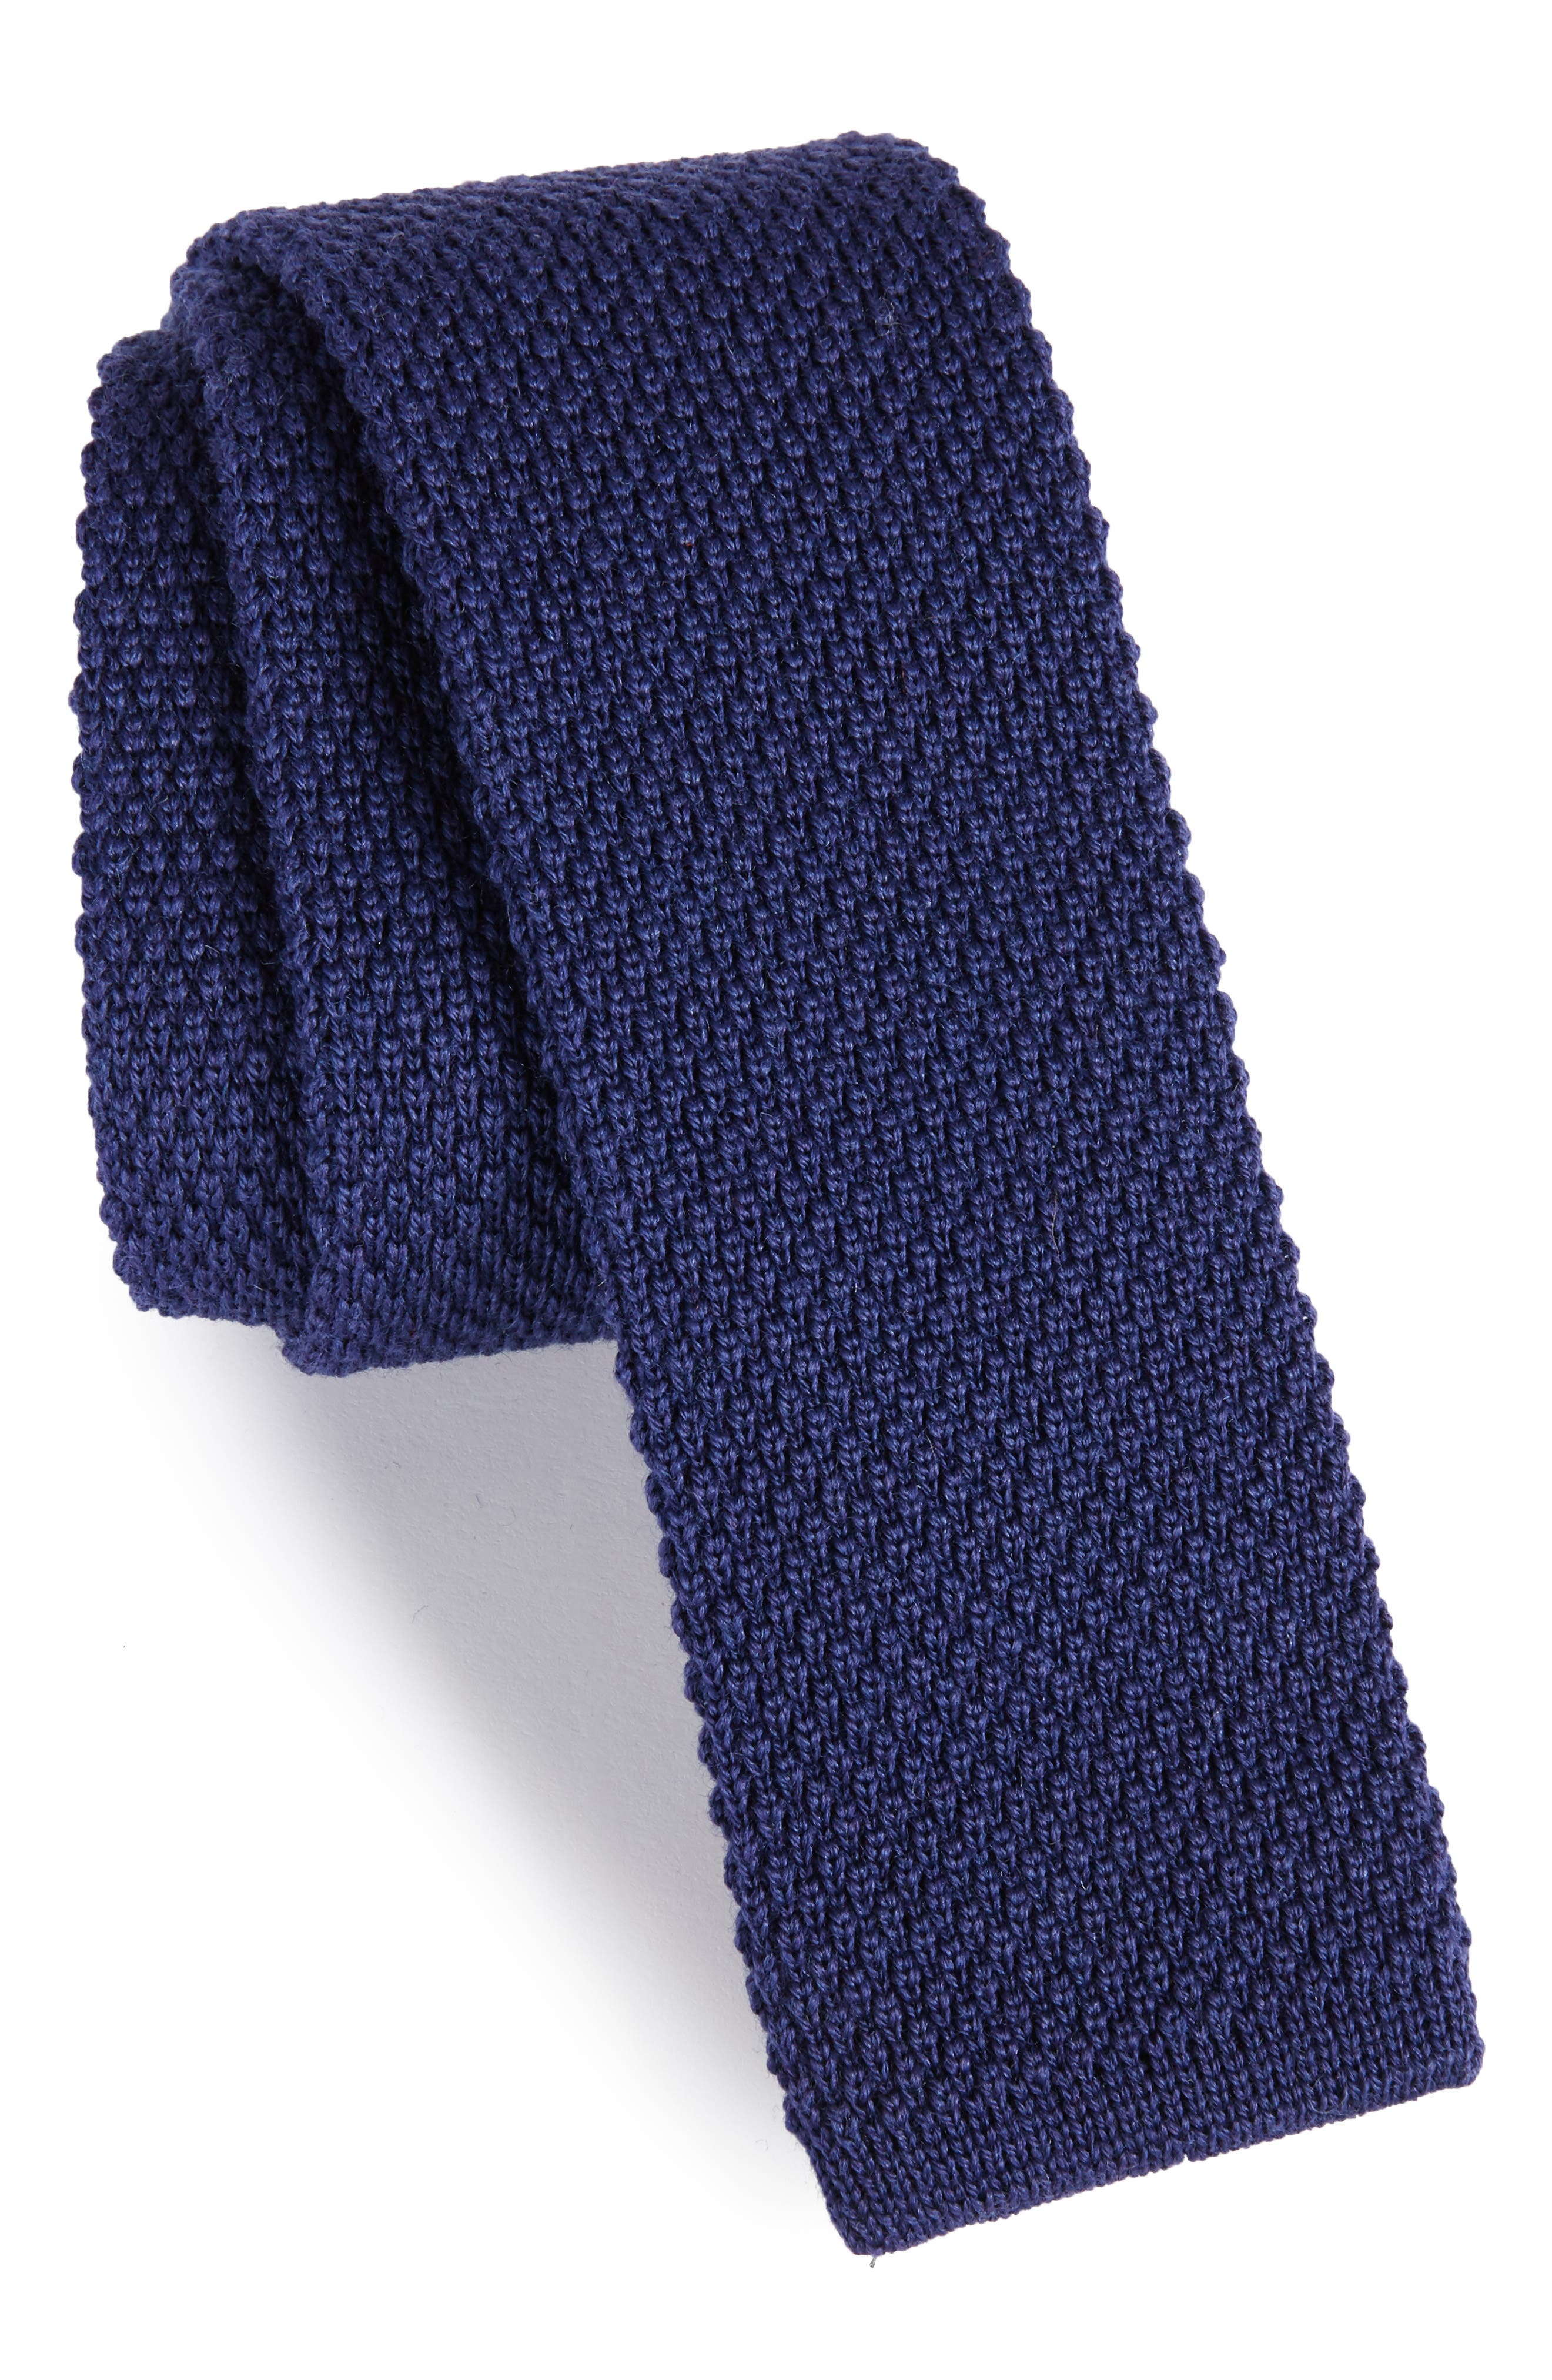 Solid Knit Wool Skinny Tie,                             Main thumbnail 1, color,                             Blue